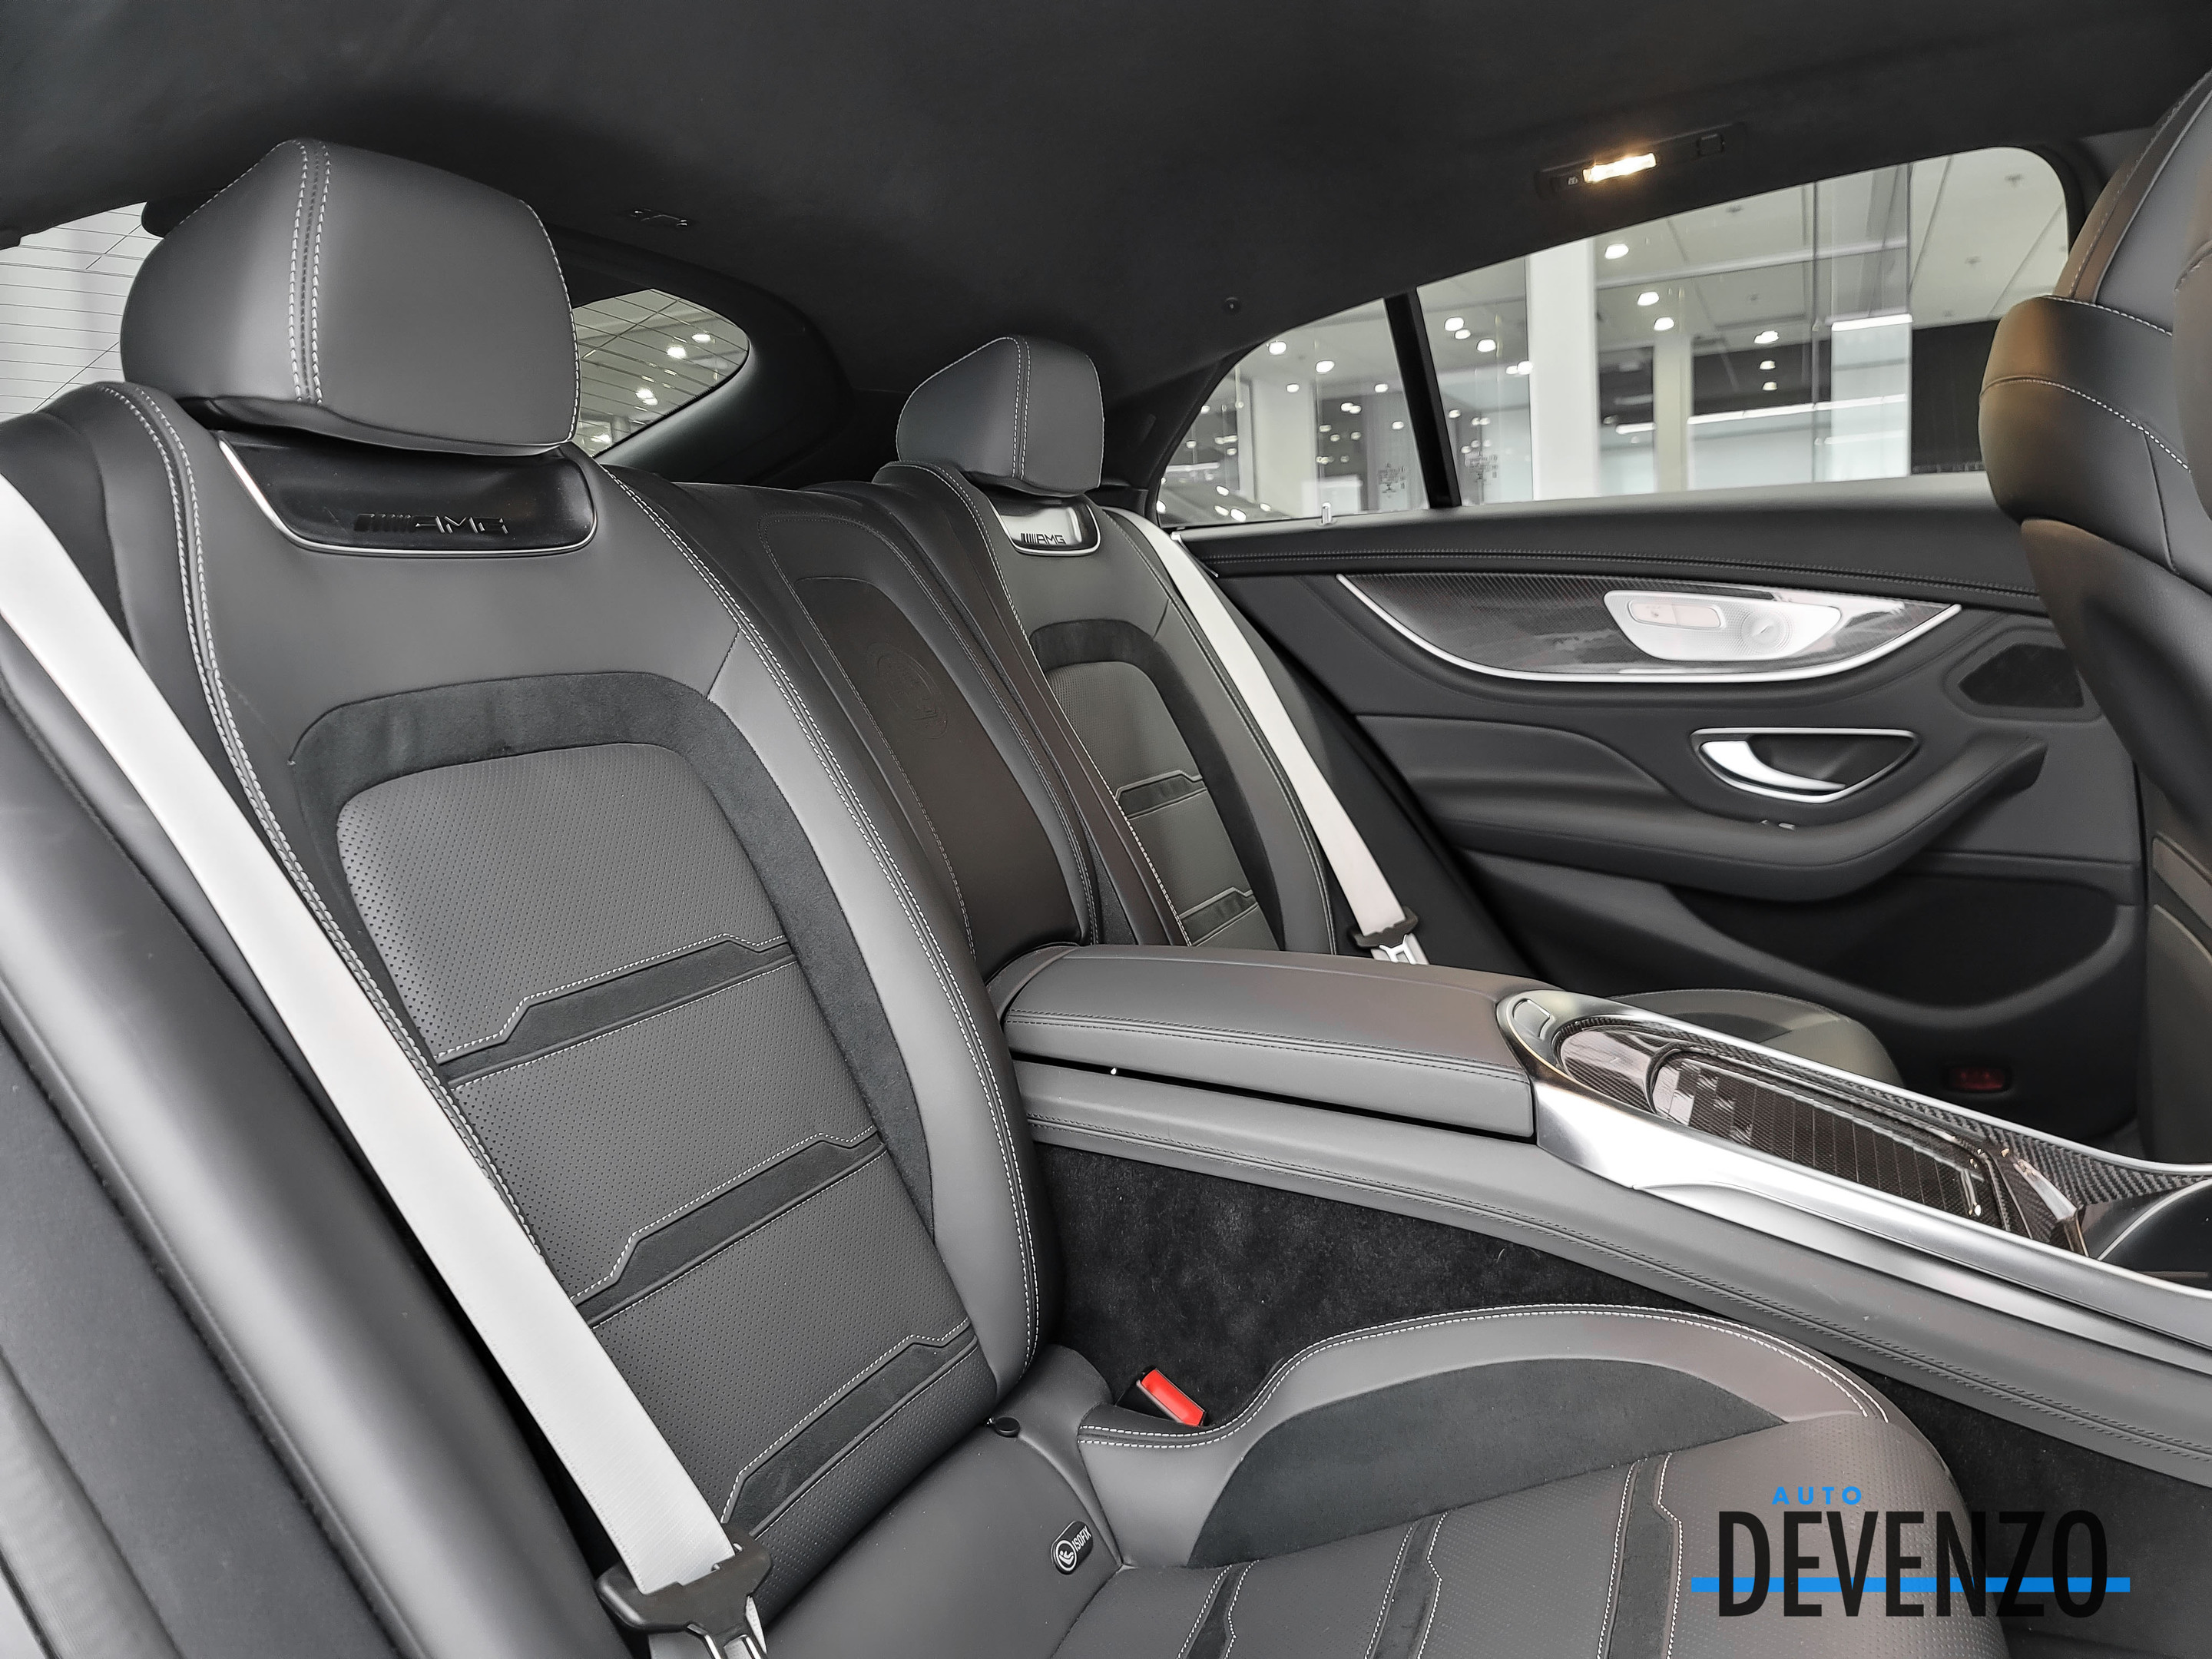 2019 Mercedes-Benz AMG GT AMG GT63 S 4-Door Coupe 630HP Full Black PPF complet